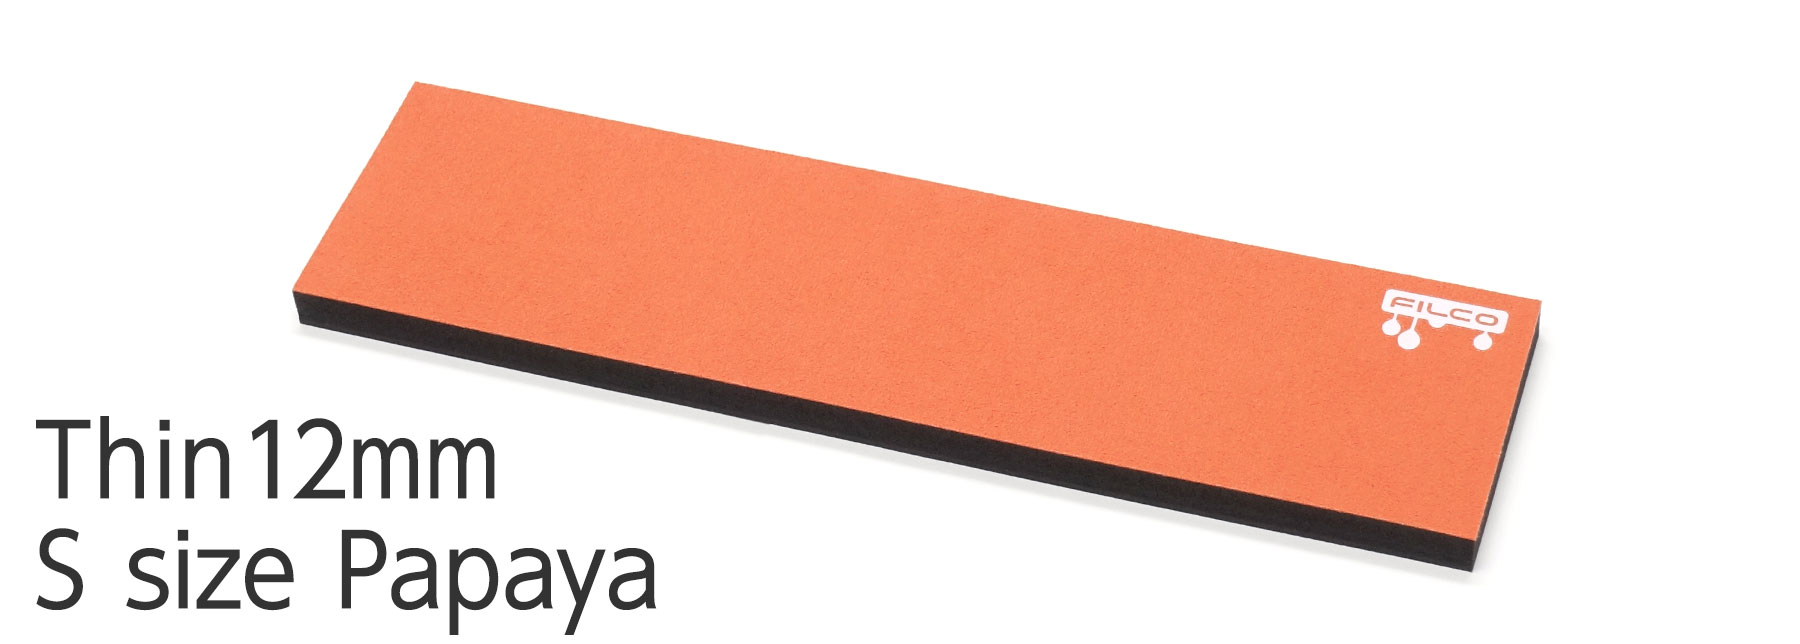 "FILCO Majestouch Wrist Rest ""Macaron"" Thin 12mm / S size / Papaya"